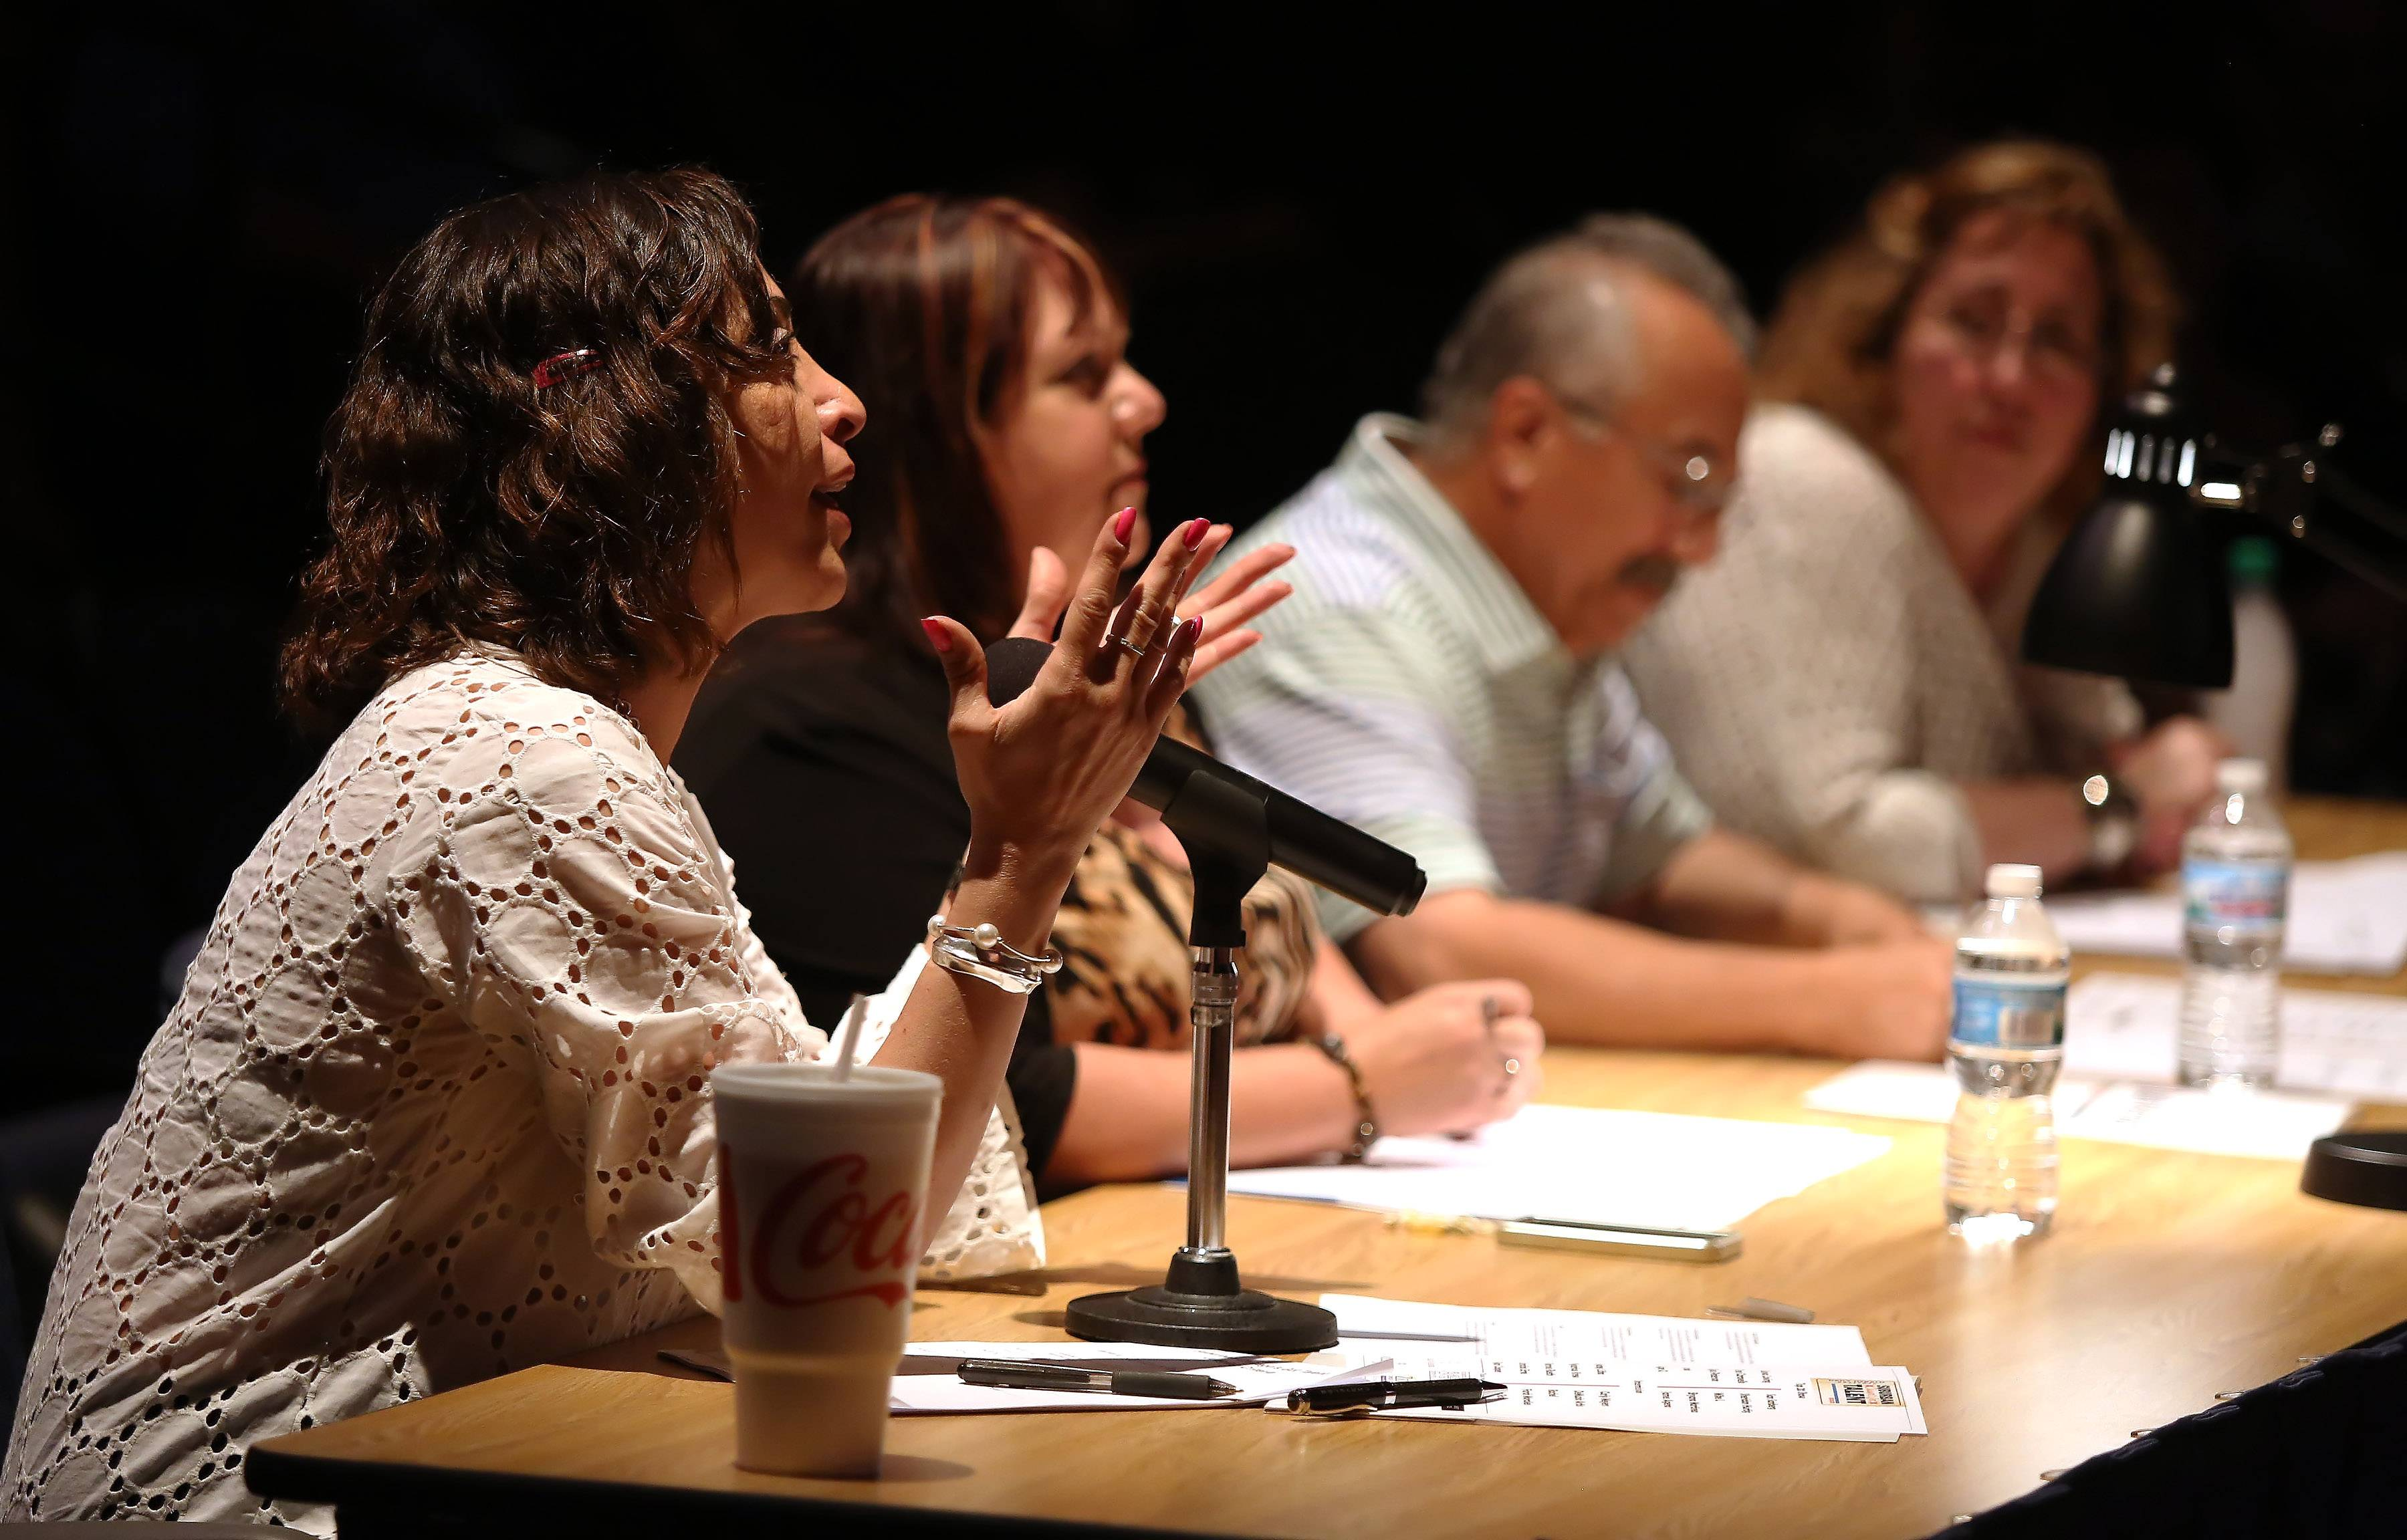 Judge Diana Martinez gives her view on an act during Sunday's performance of the top 20 finalists of the Suburban Chicago's Got Talent competition Sunday at the Prairie Center for the Arts in Schaumburg.